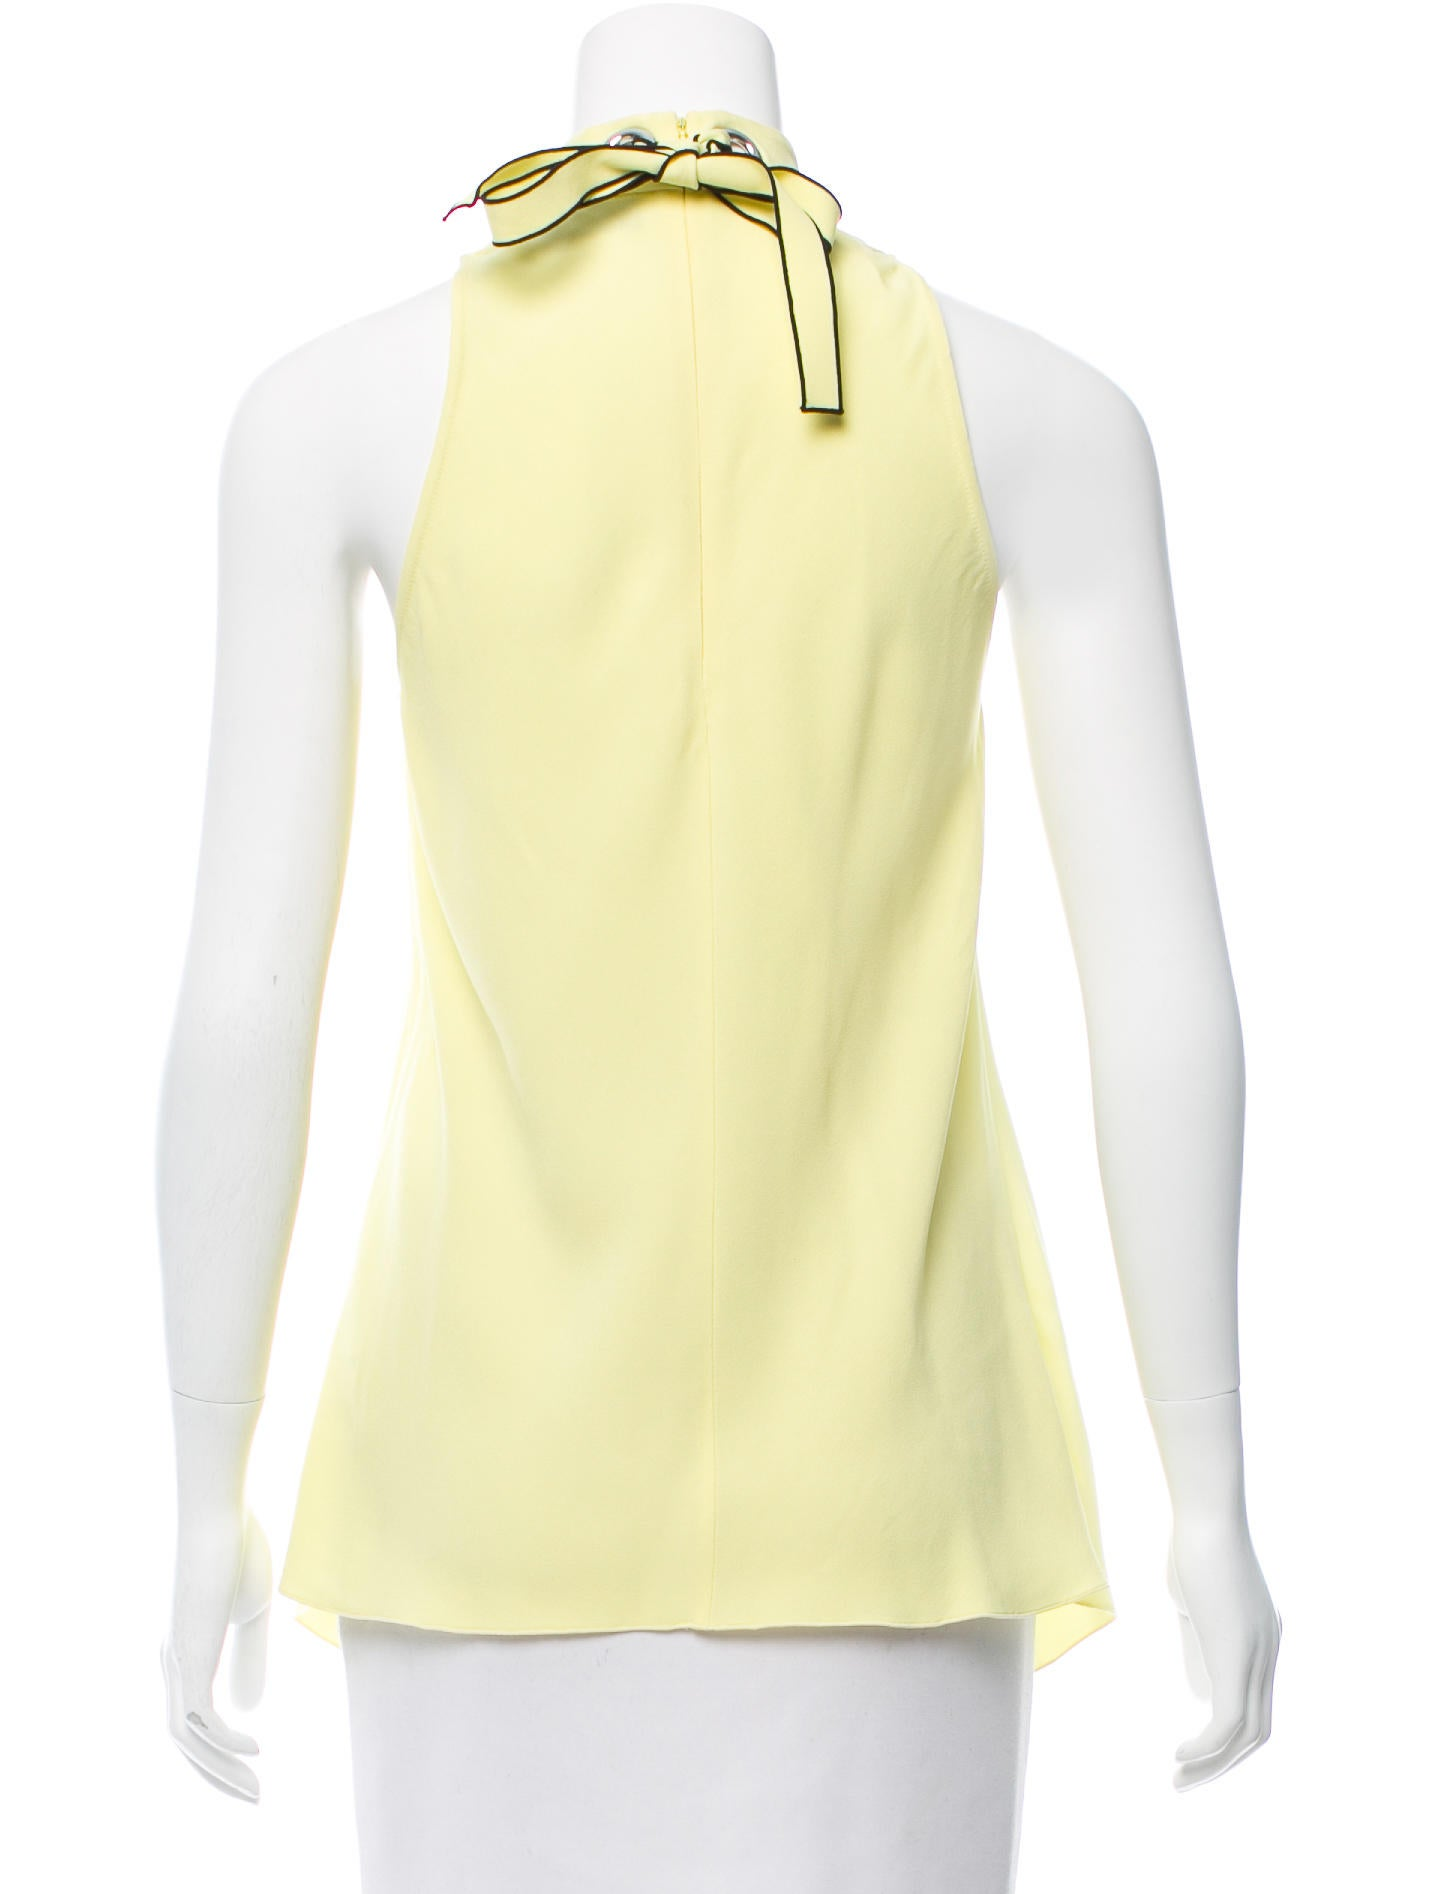 Proenza schouler sleeveless mock neck top clothing for Sleeveless mock turtleneck shirts